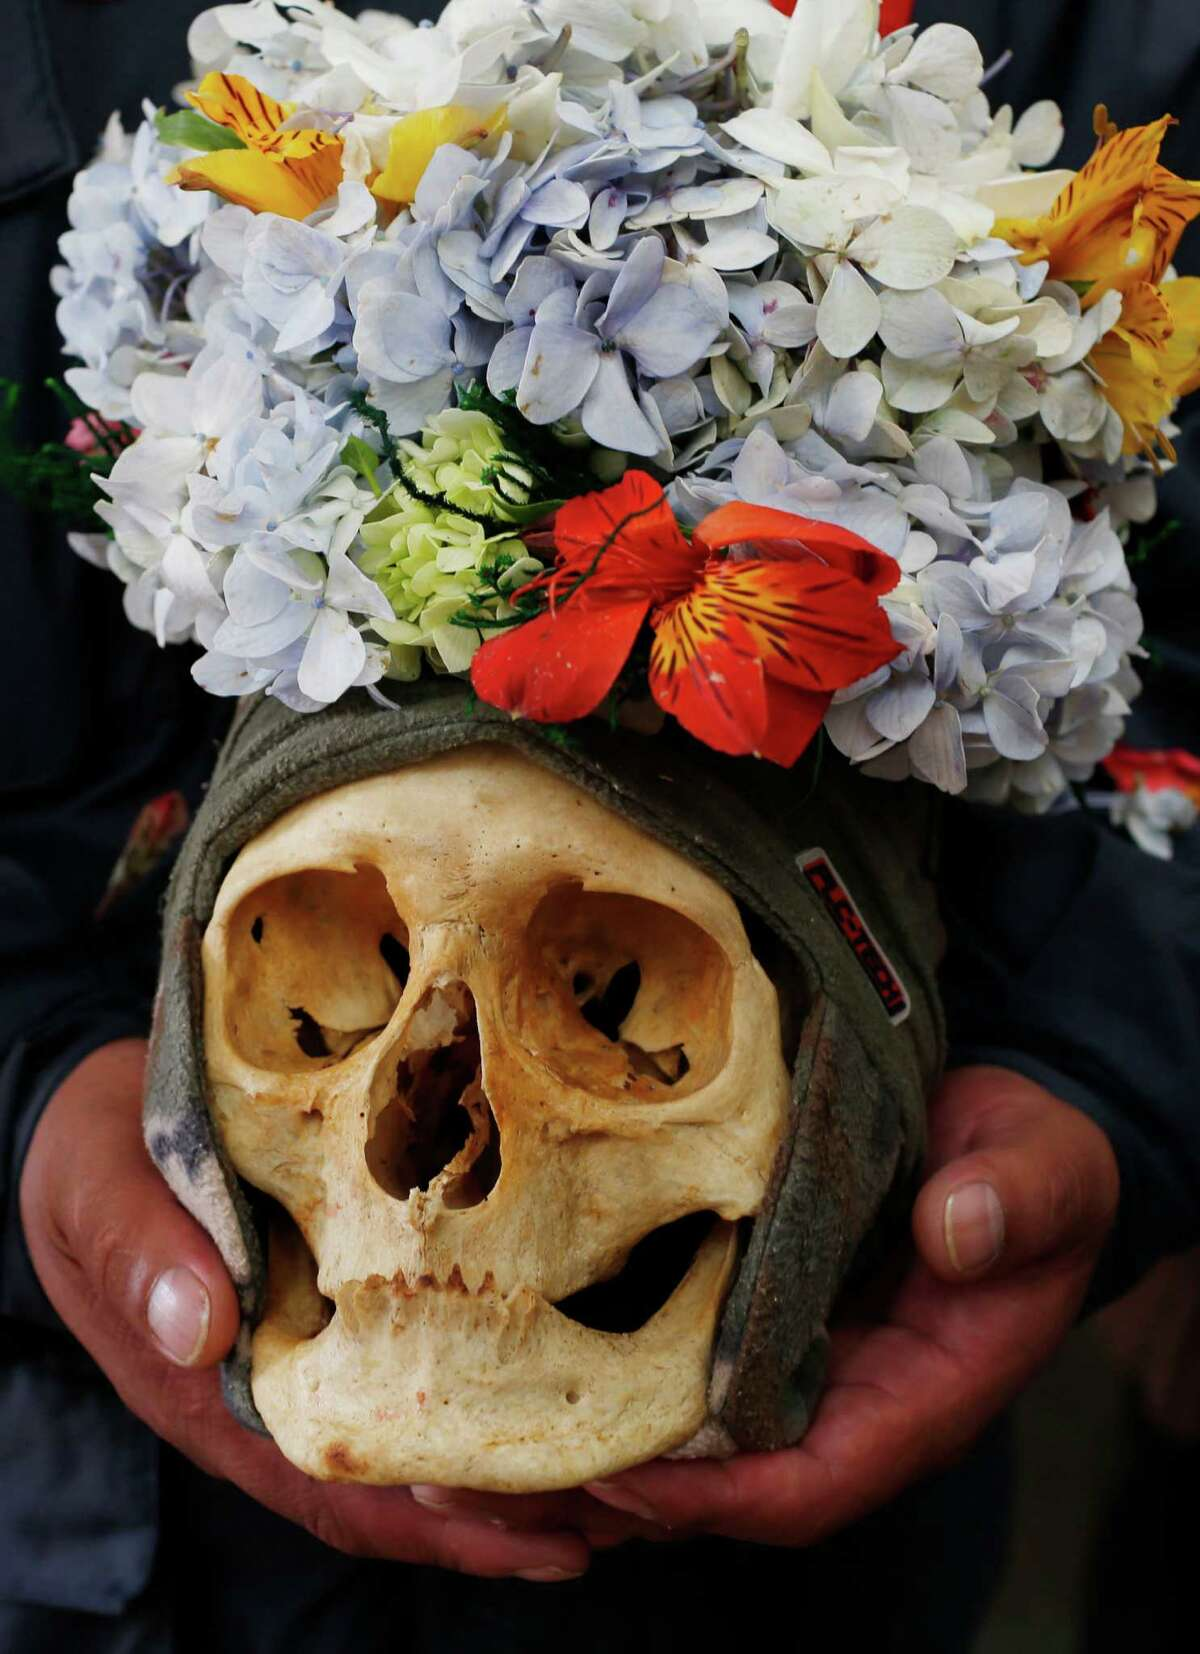 A woman carries decorated human skull or